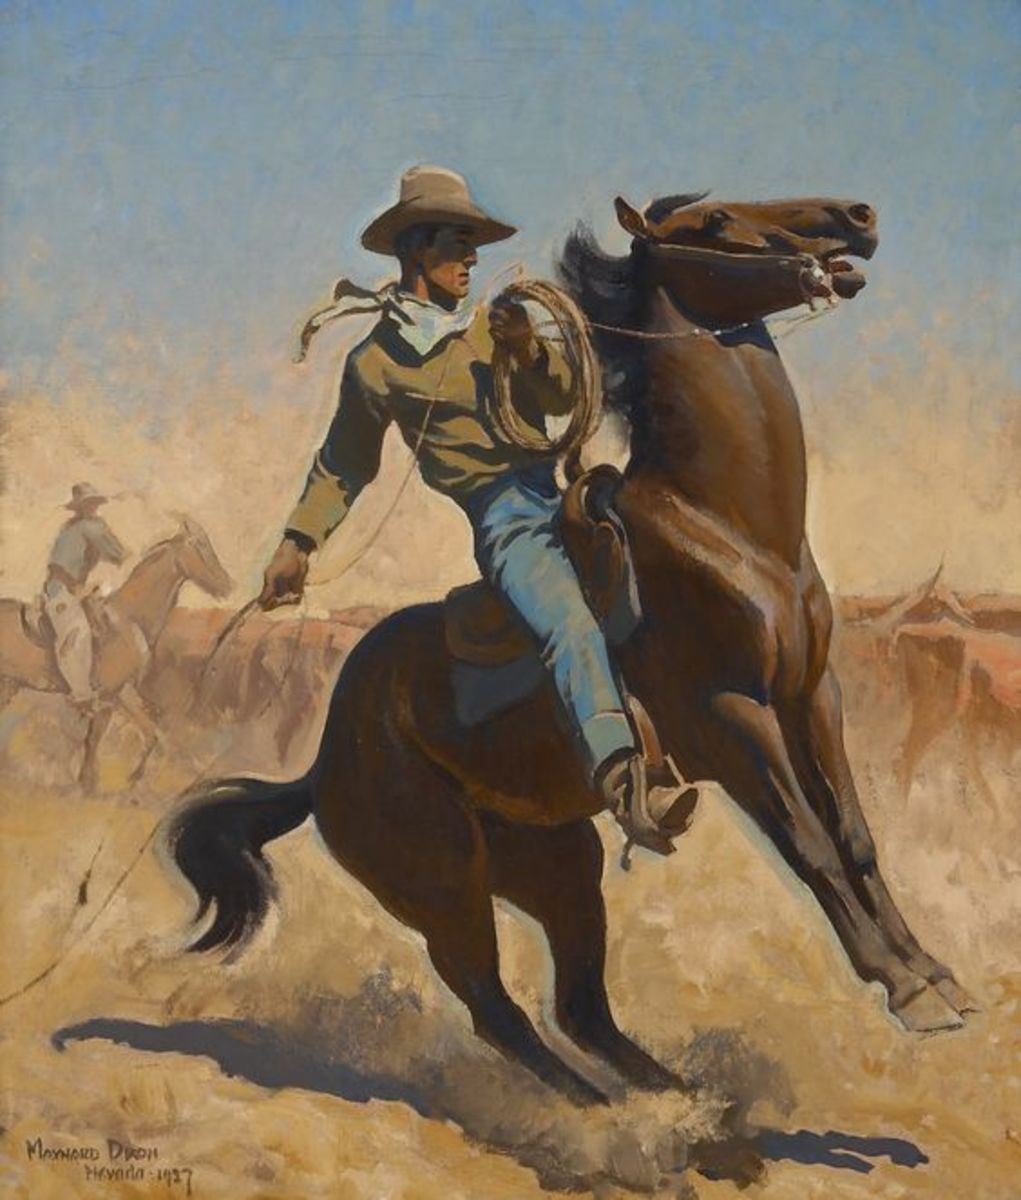 The Cowpuncher a painting by Maynard Dixon